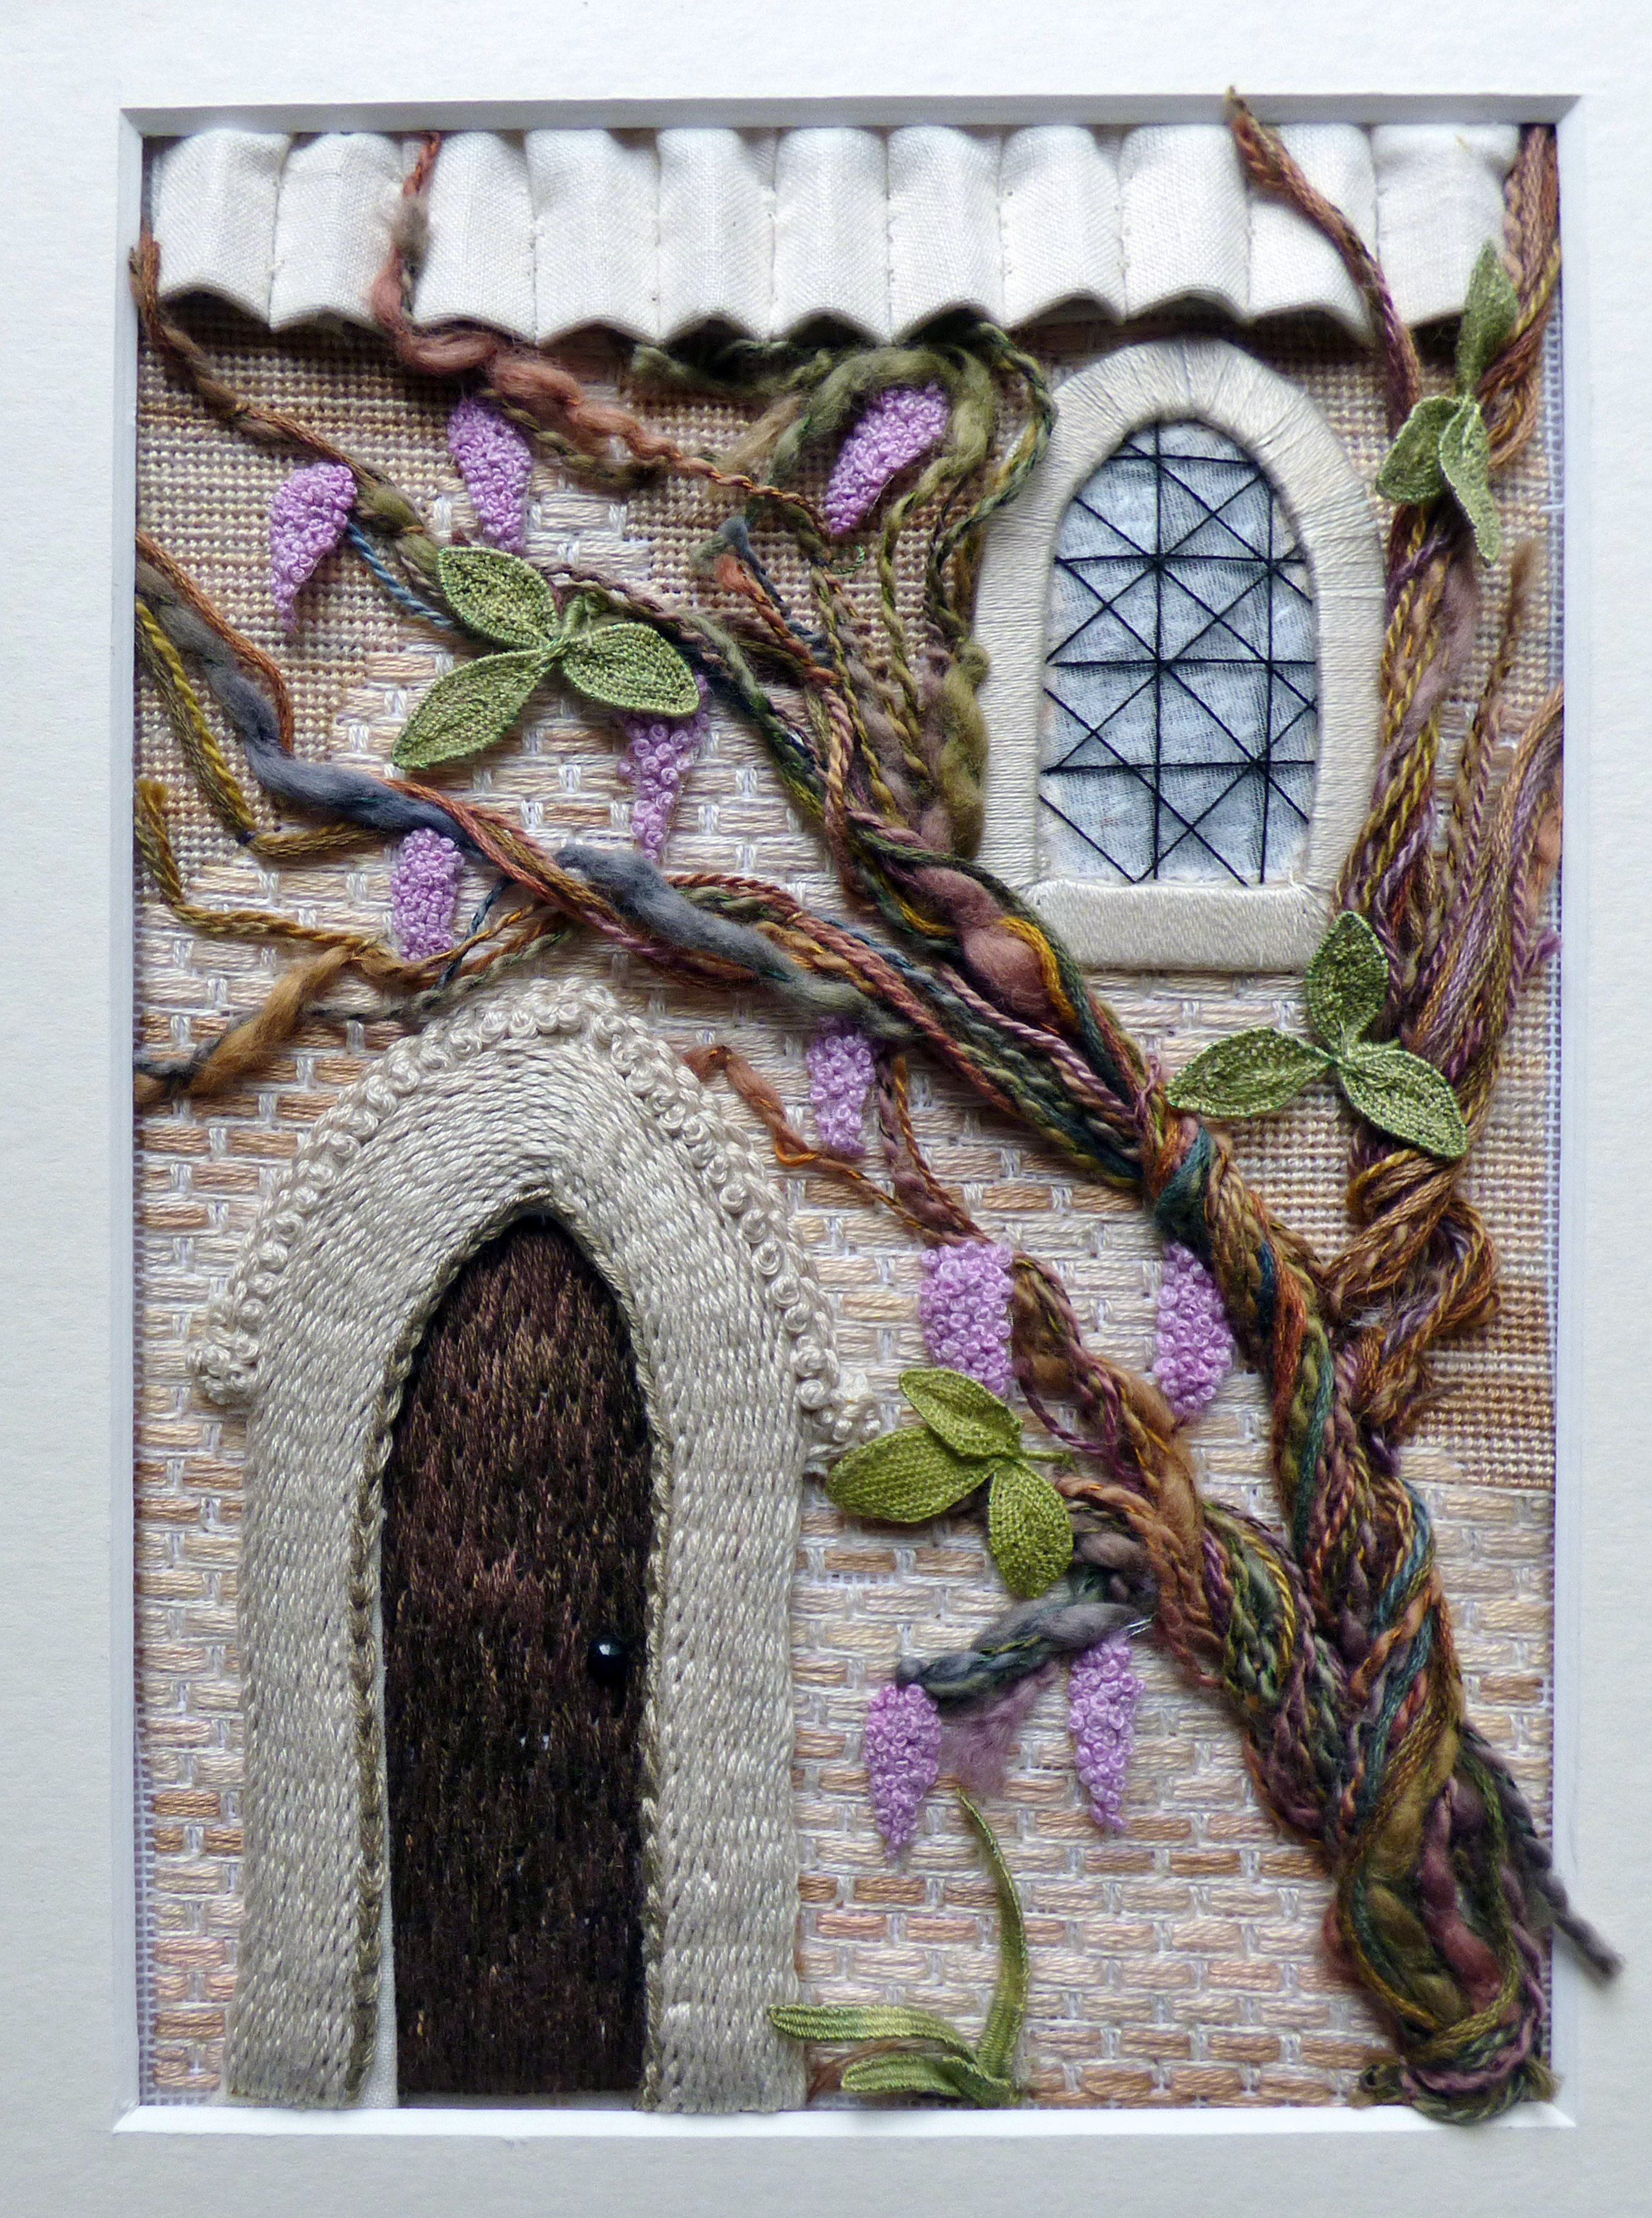 THE HOUSE WALL by Kay Dennis, stumpwork